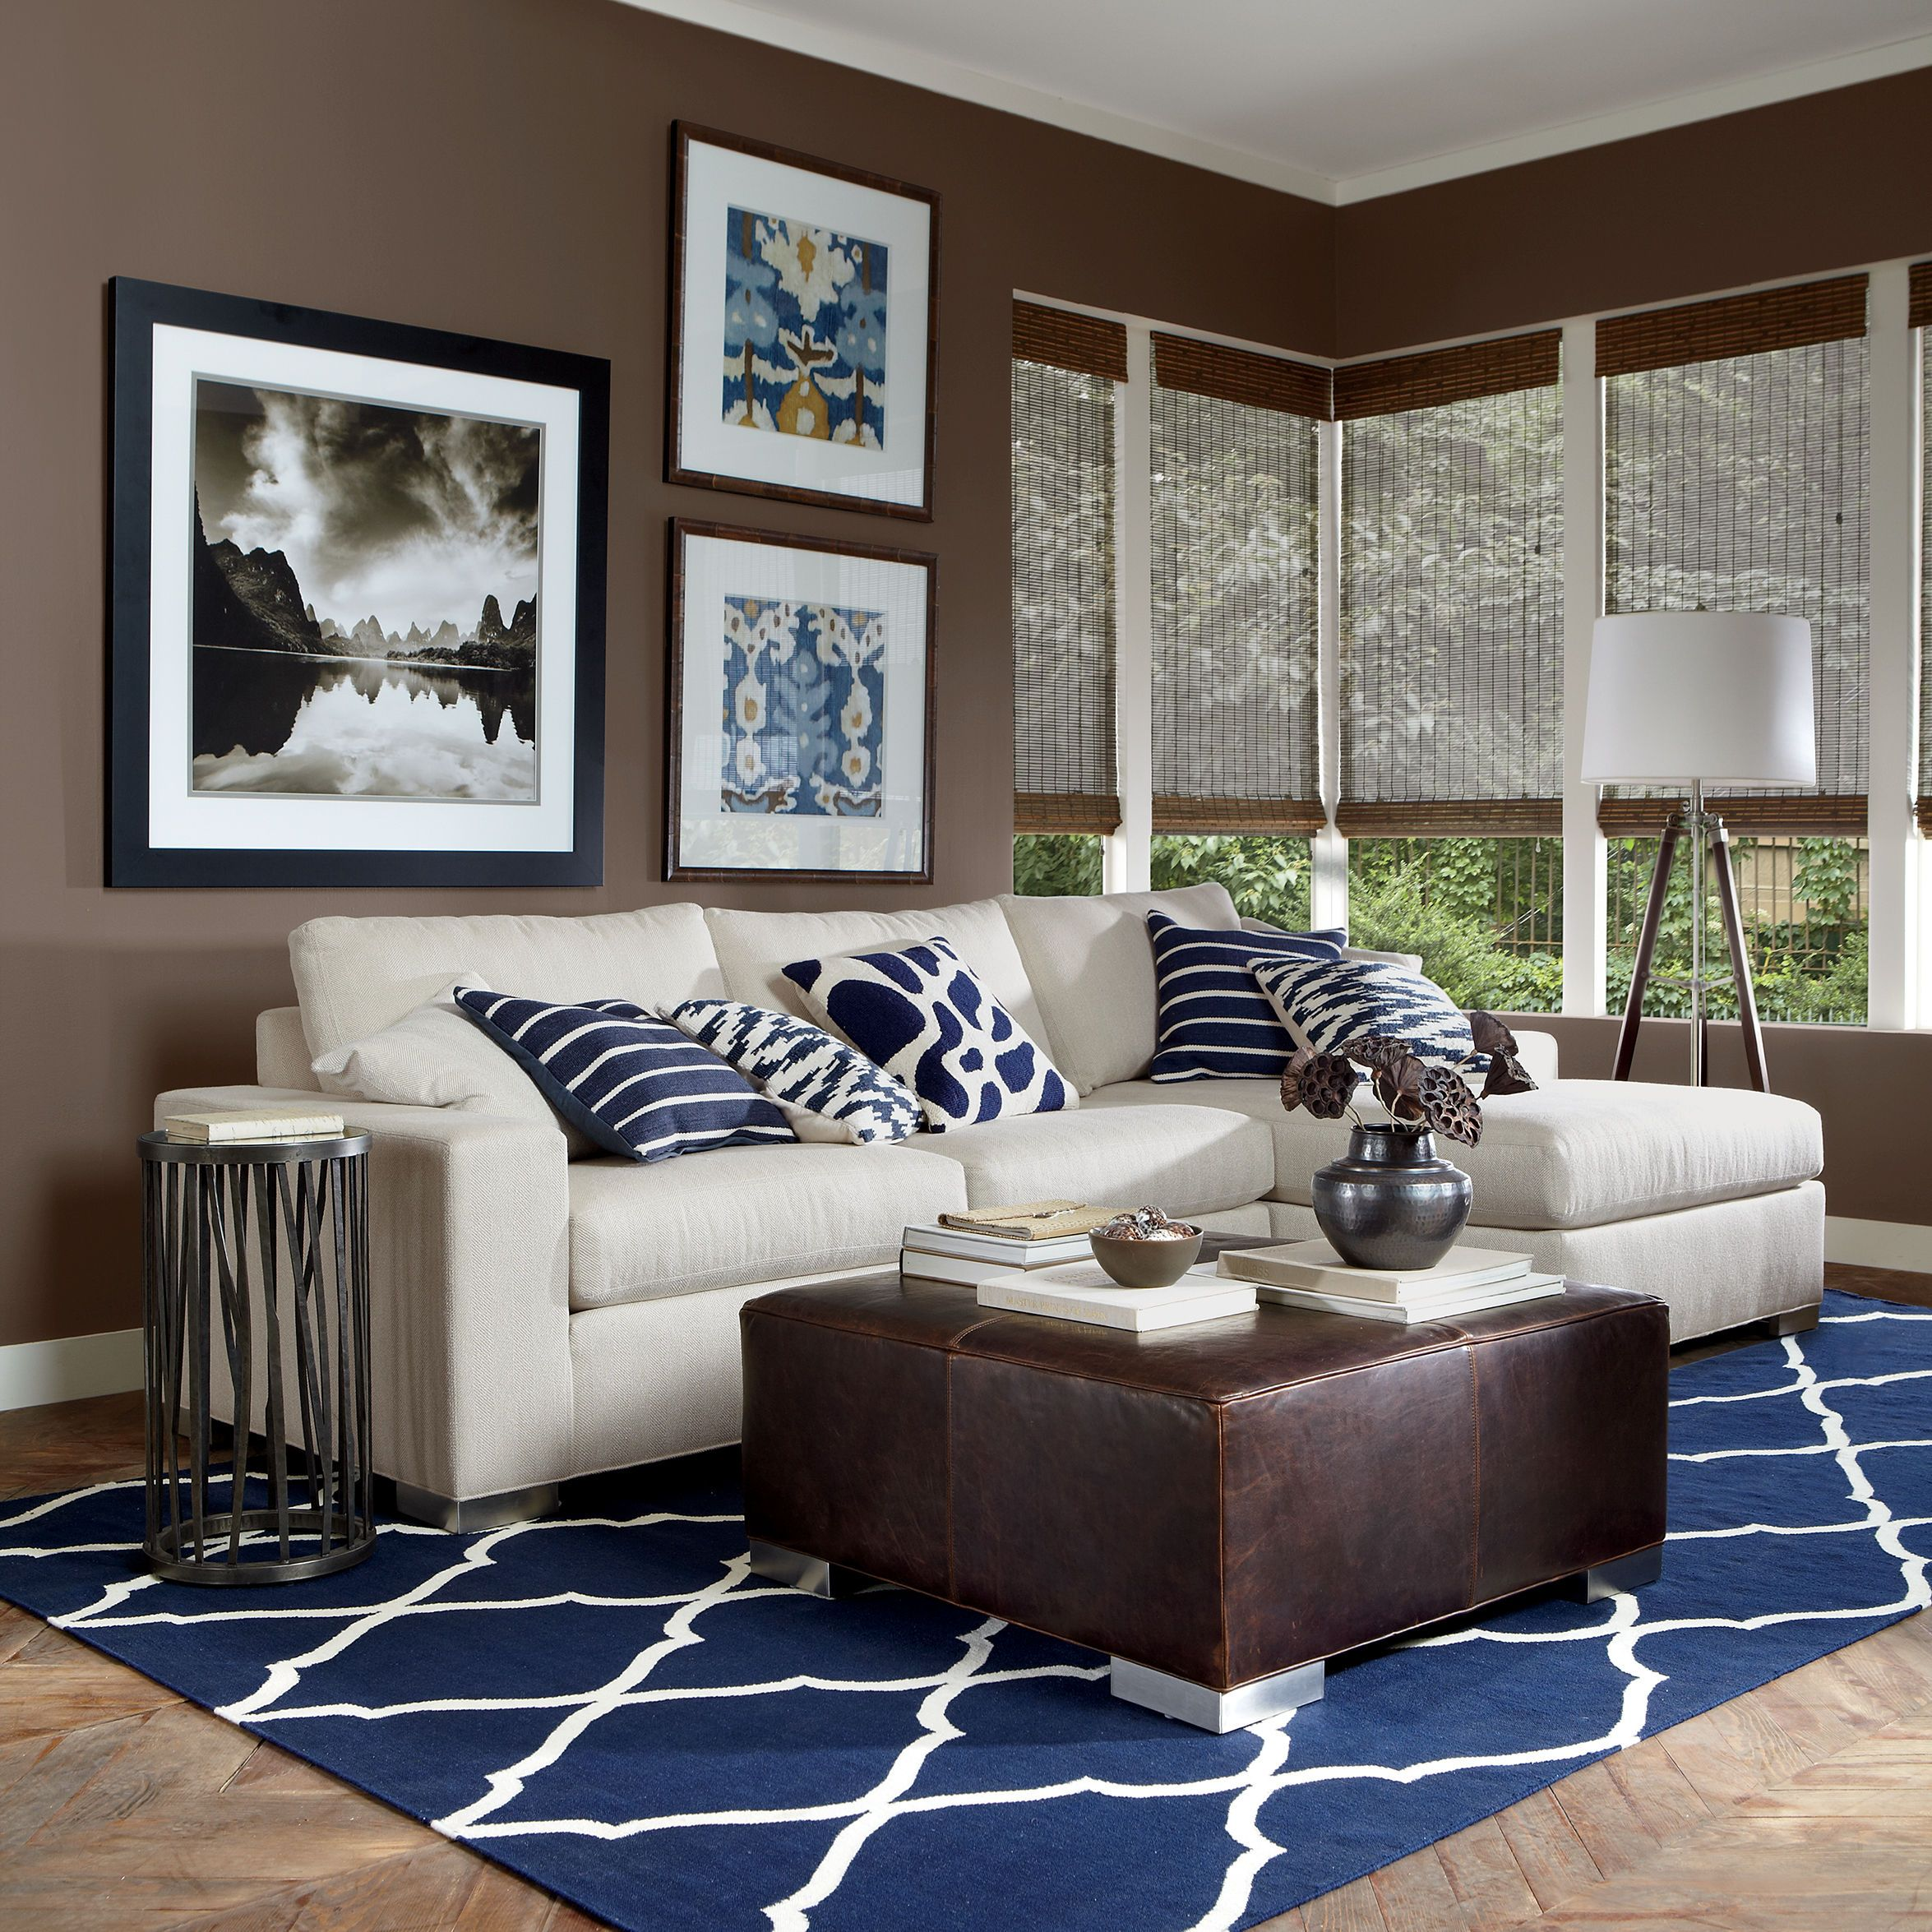 bedroom decorating ideas blue and brown. Ethan Allen living room  Blue rooms ETHAN ALLEN